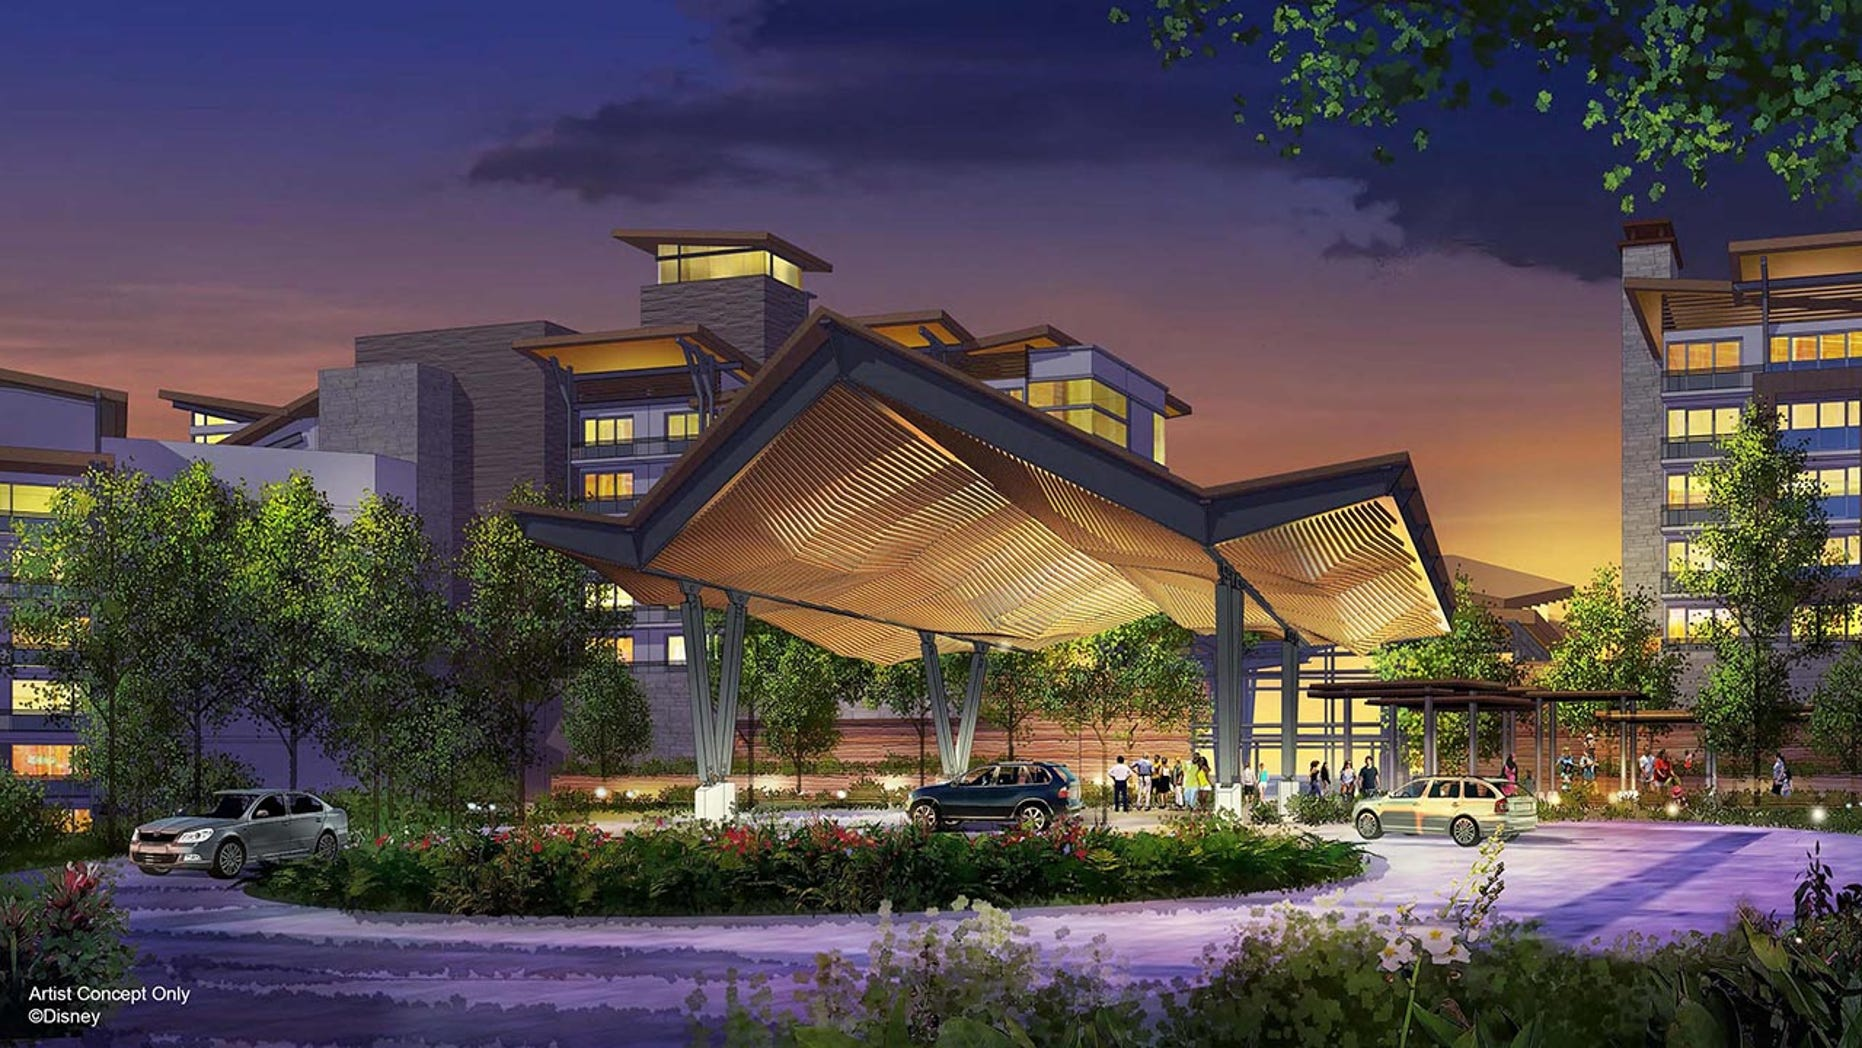 Walt Disney World announces new nature-themed resort for 2022